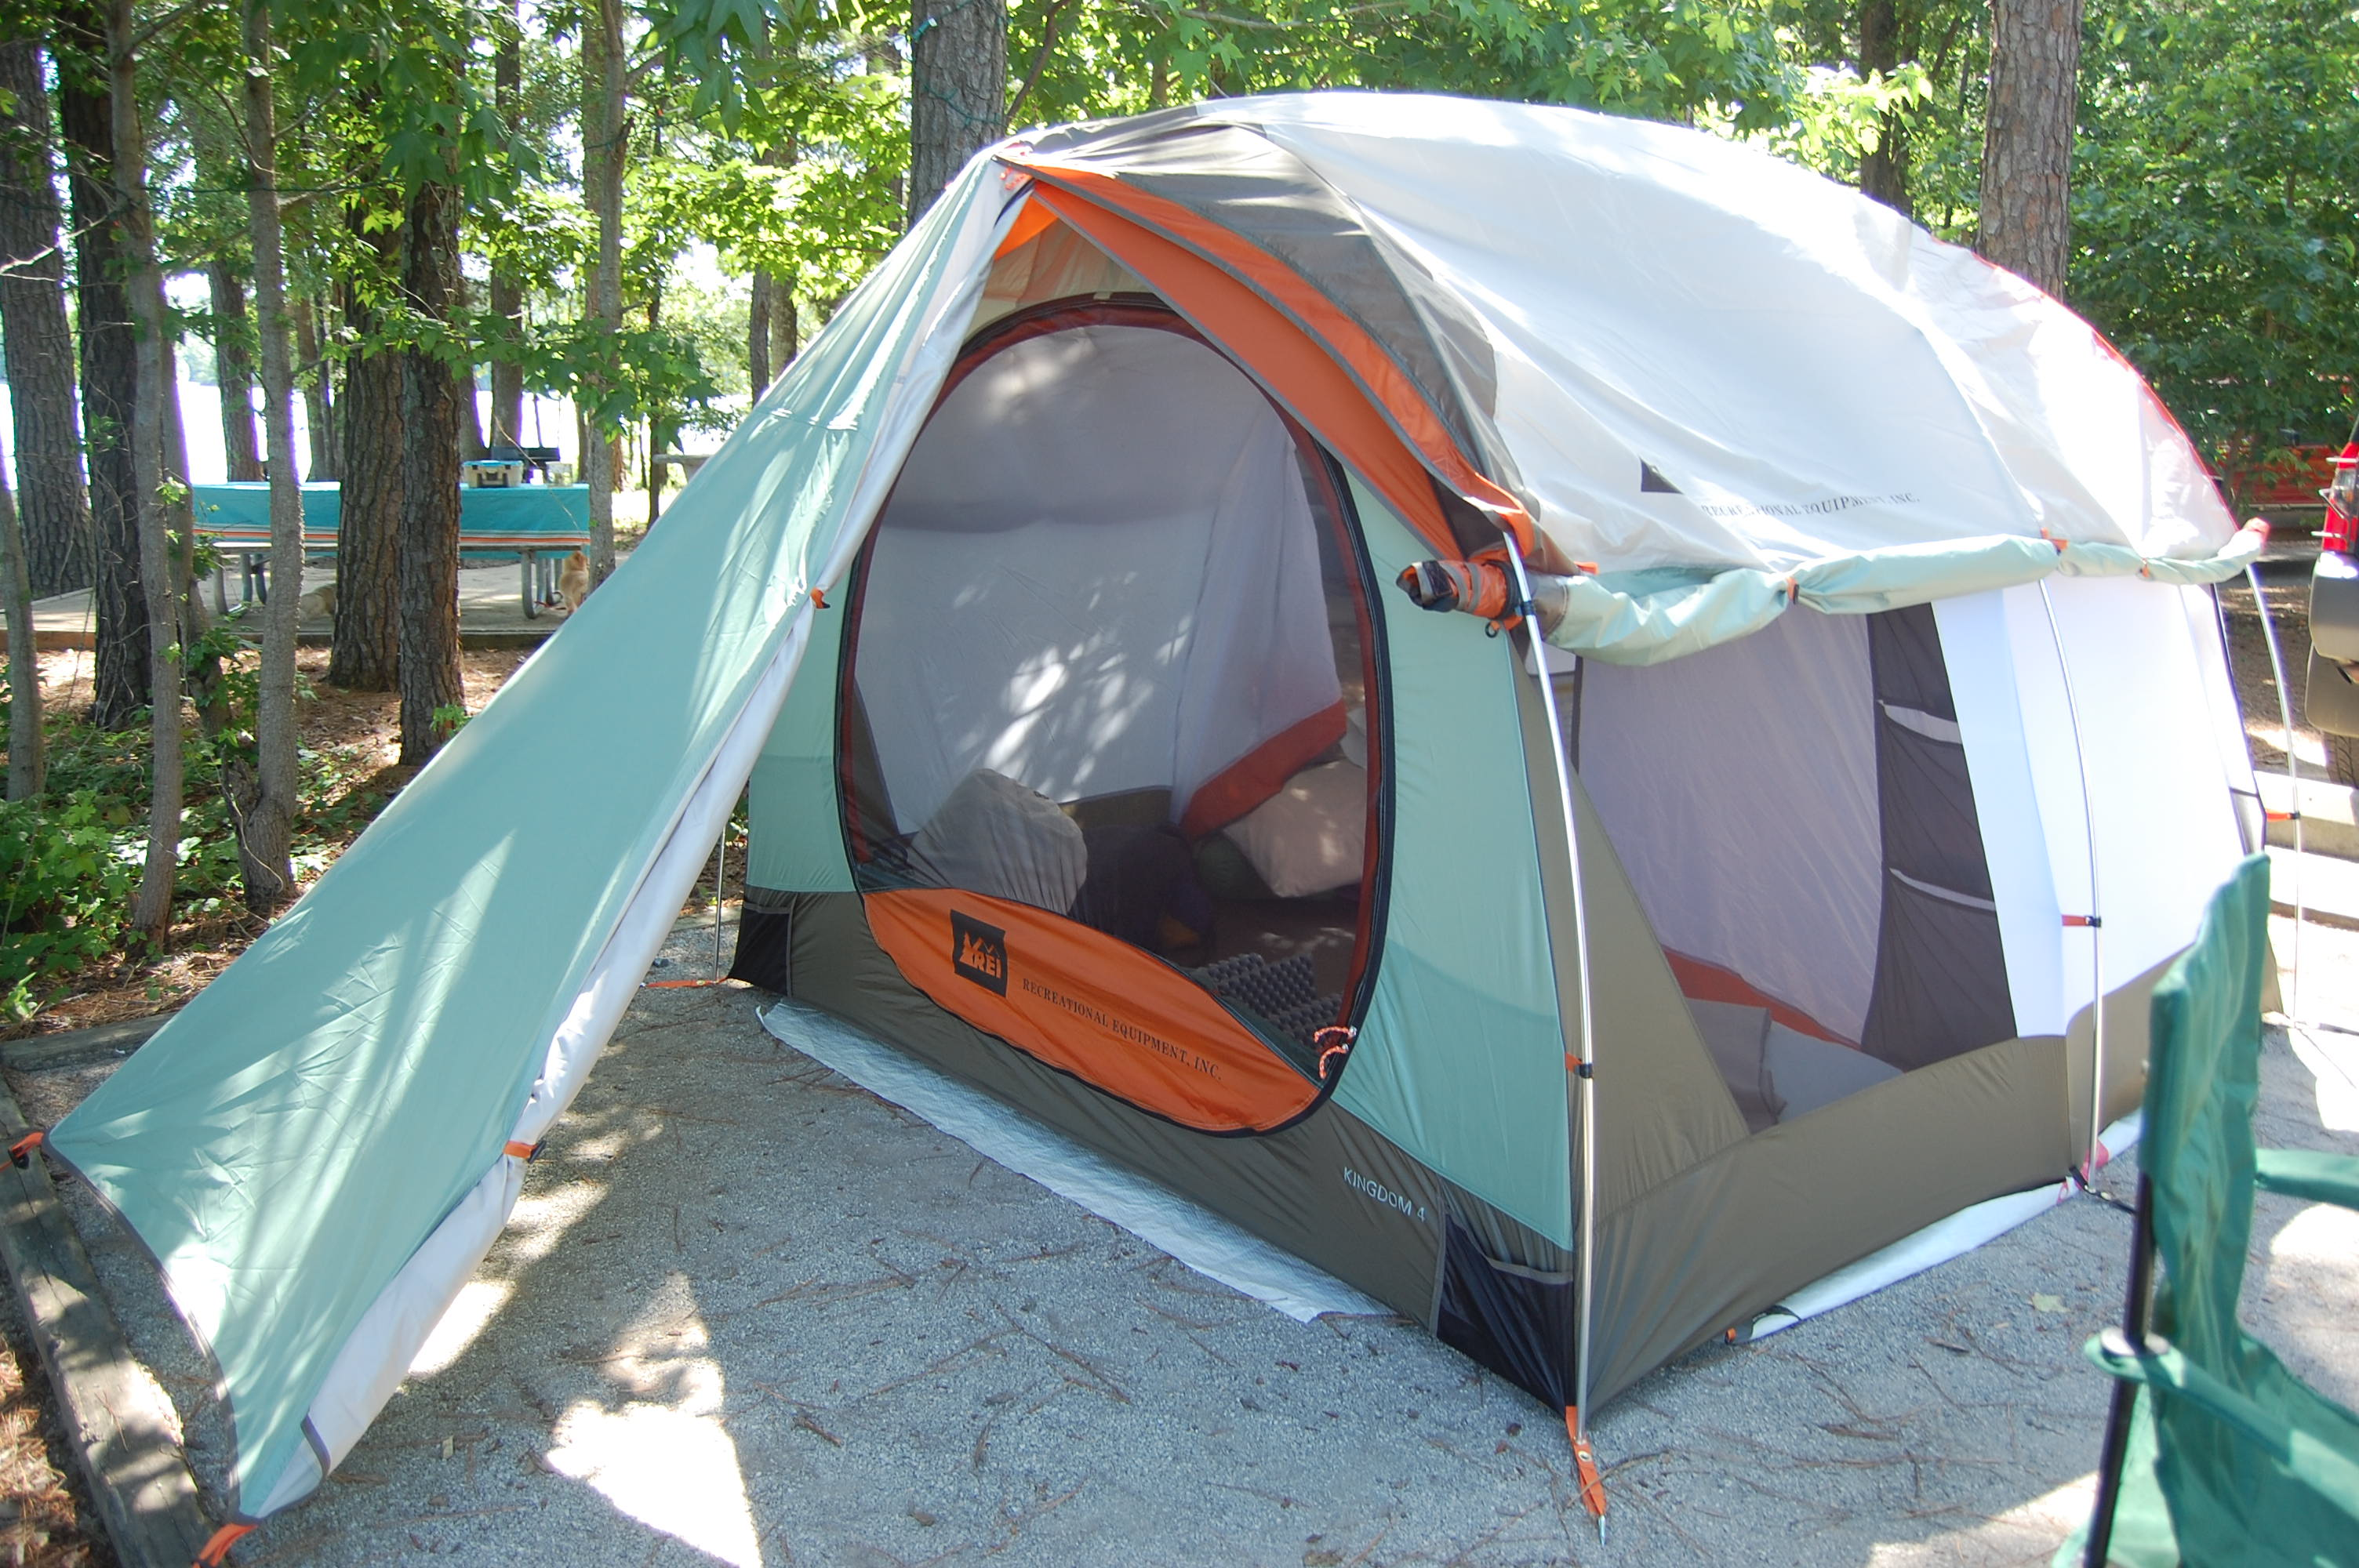 Taking in the new REI Kingdom ... & Piney Grove Family Camping Trip | Sticku0027s Blog